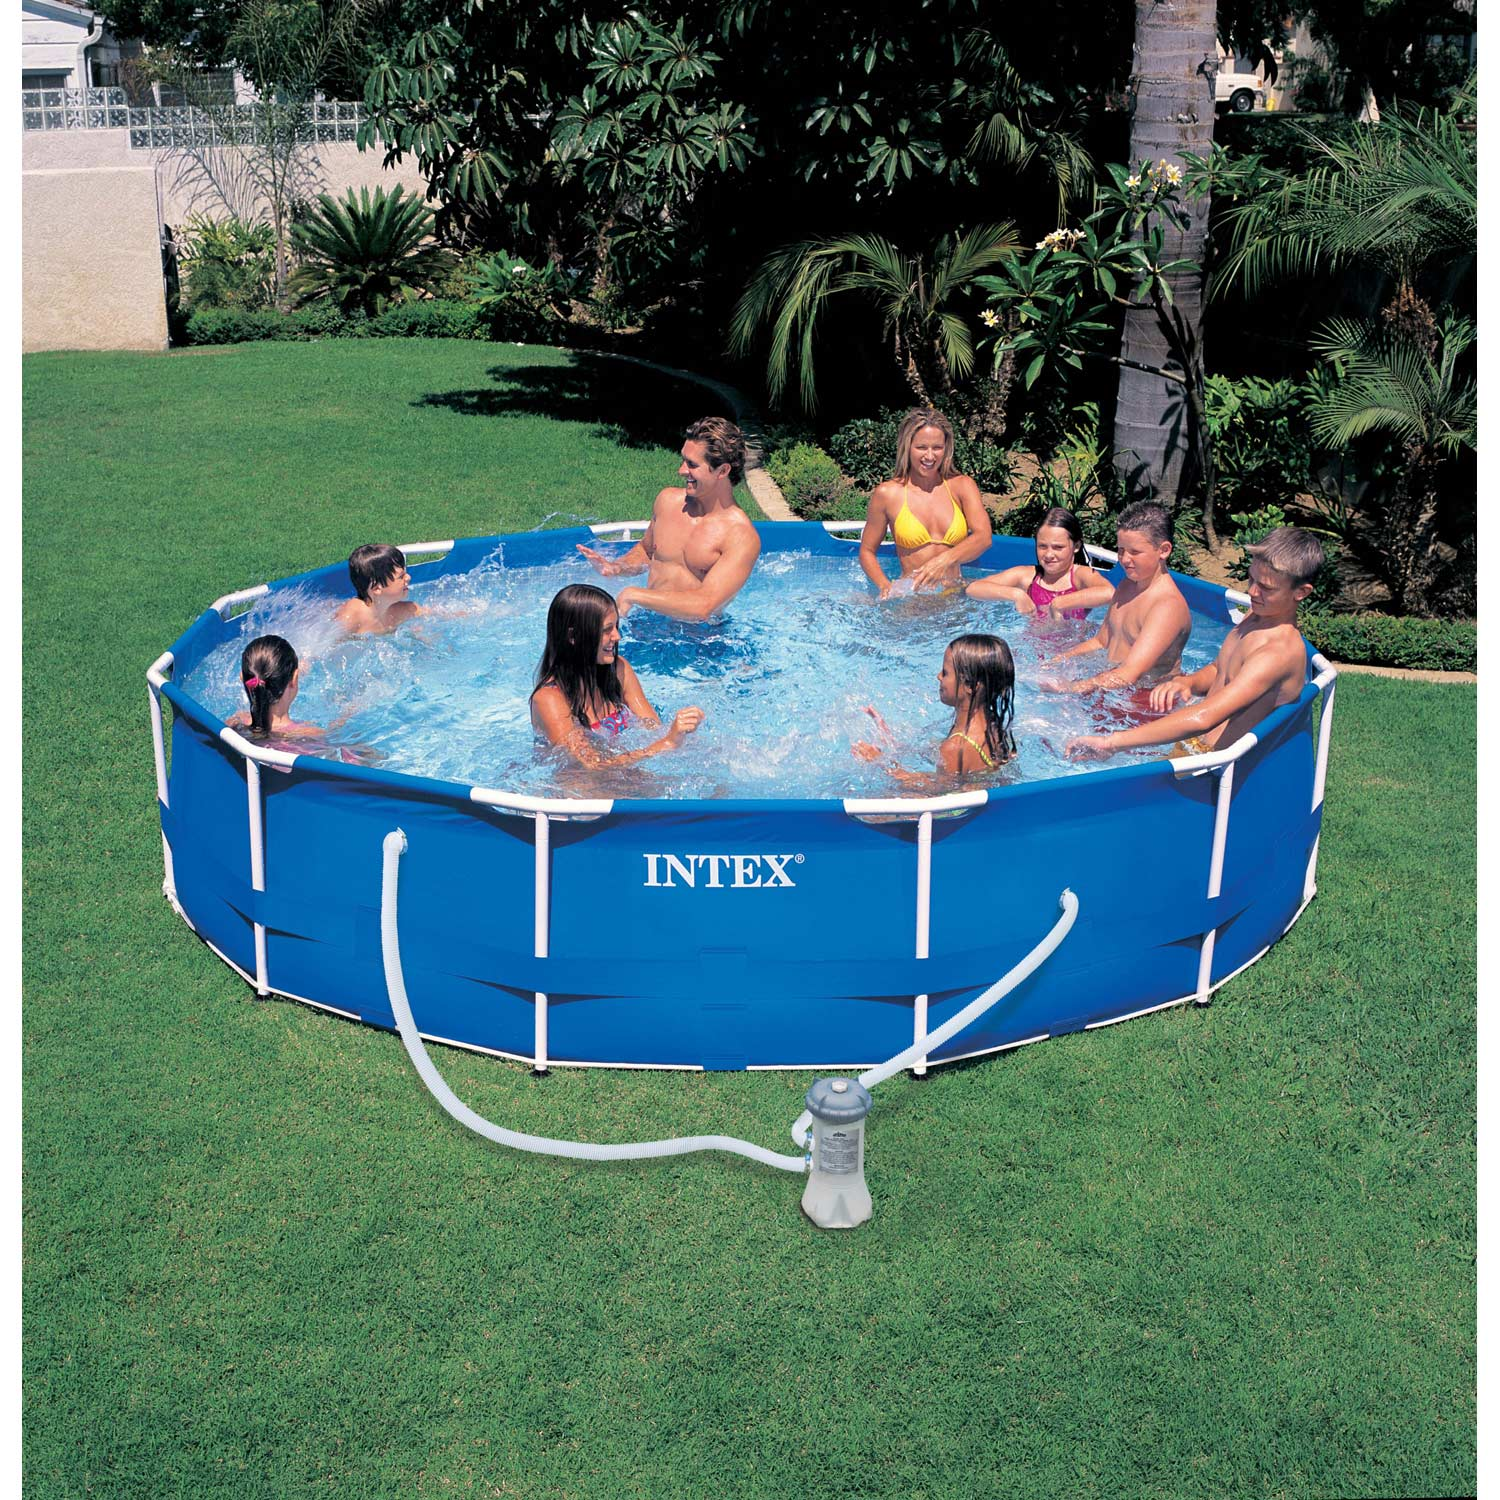 Piscine hors sol autoportante tubulaire metal frame intex for Occasion piscine hors sol